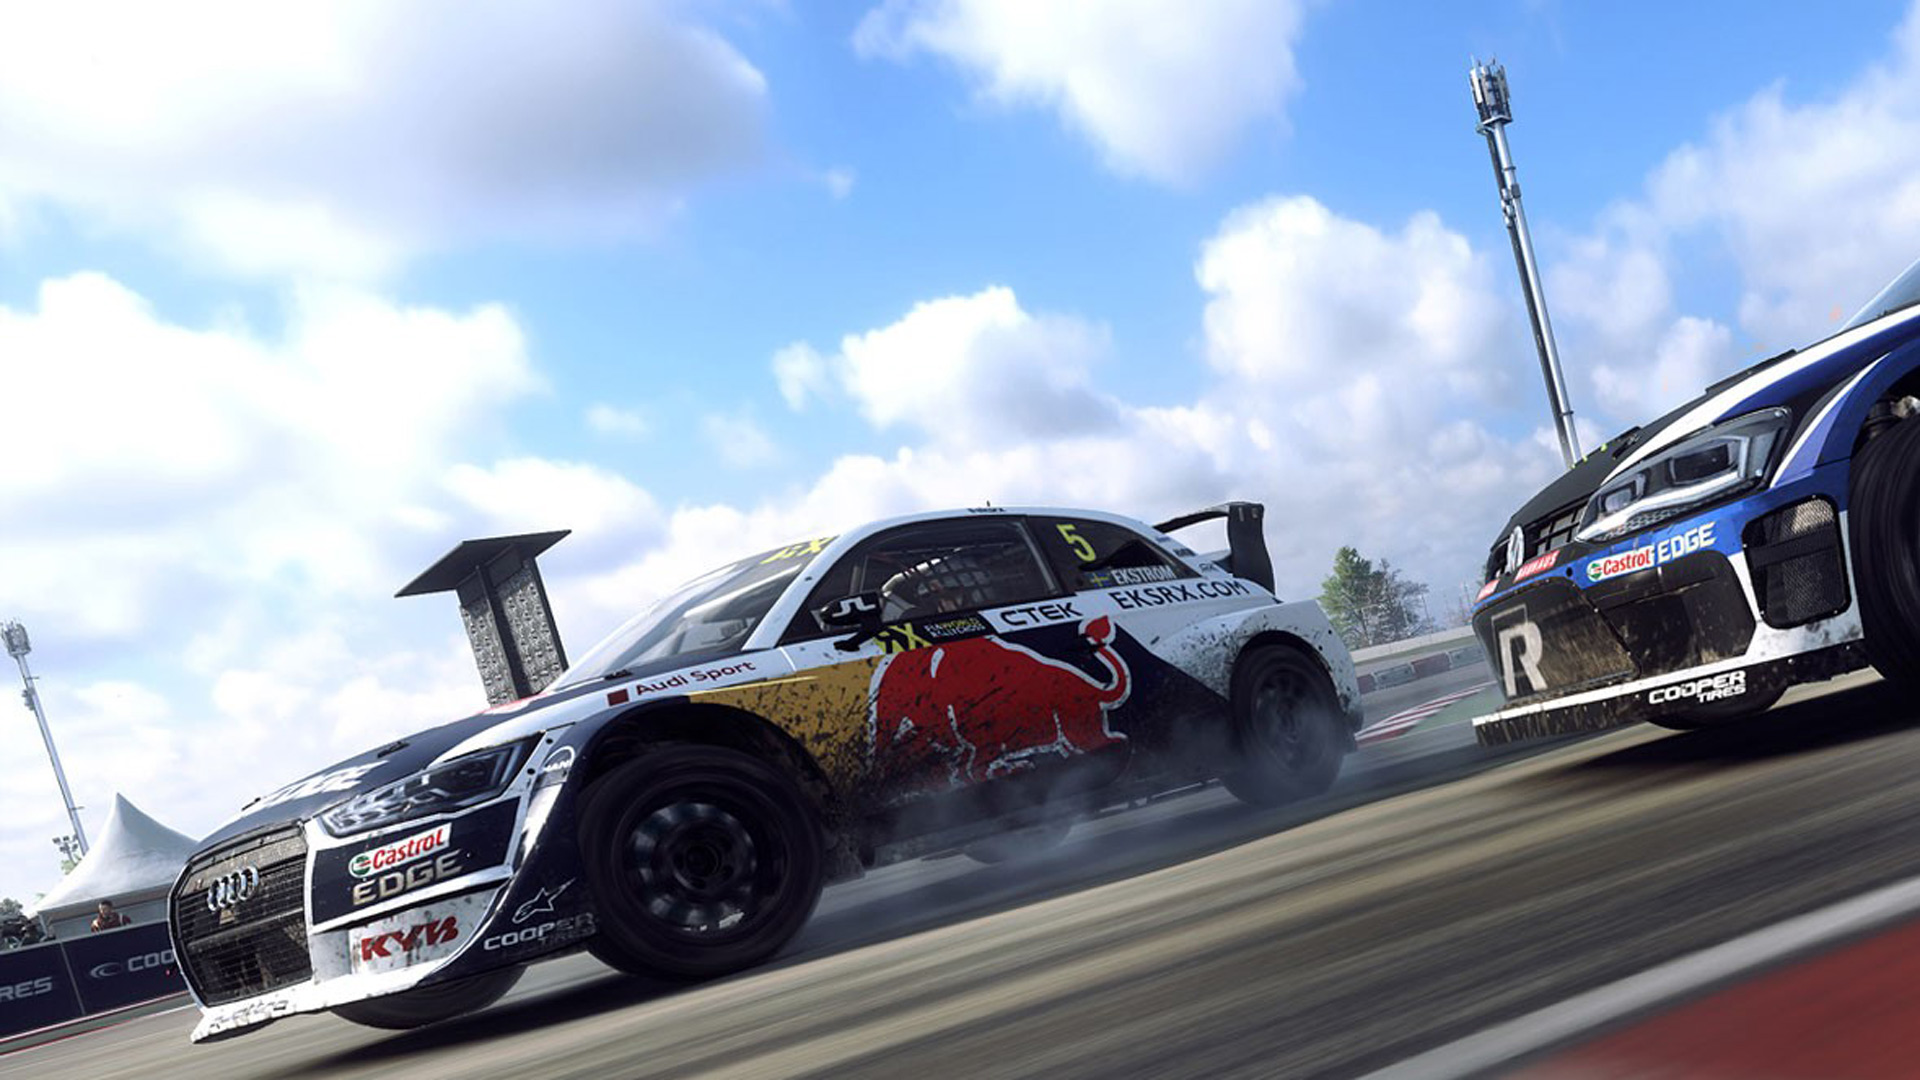 DiRT Rally 2 0' is Getting VR Support After All, Coming to